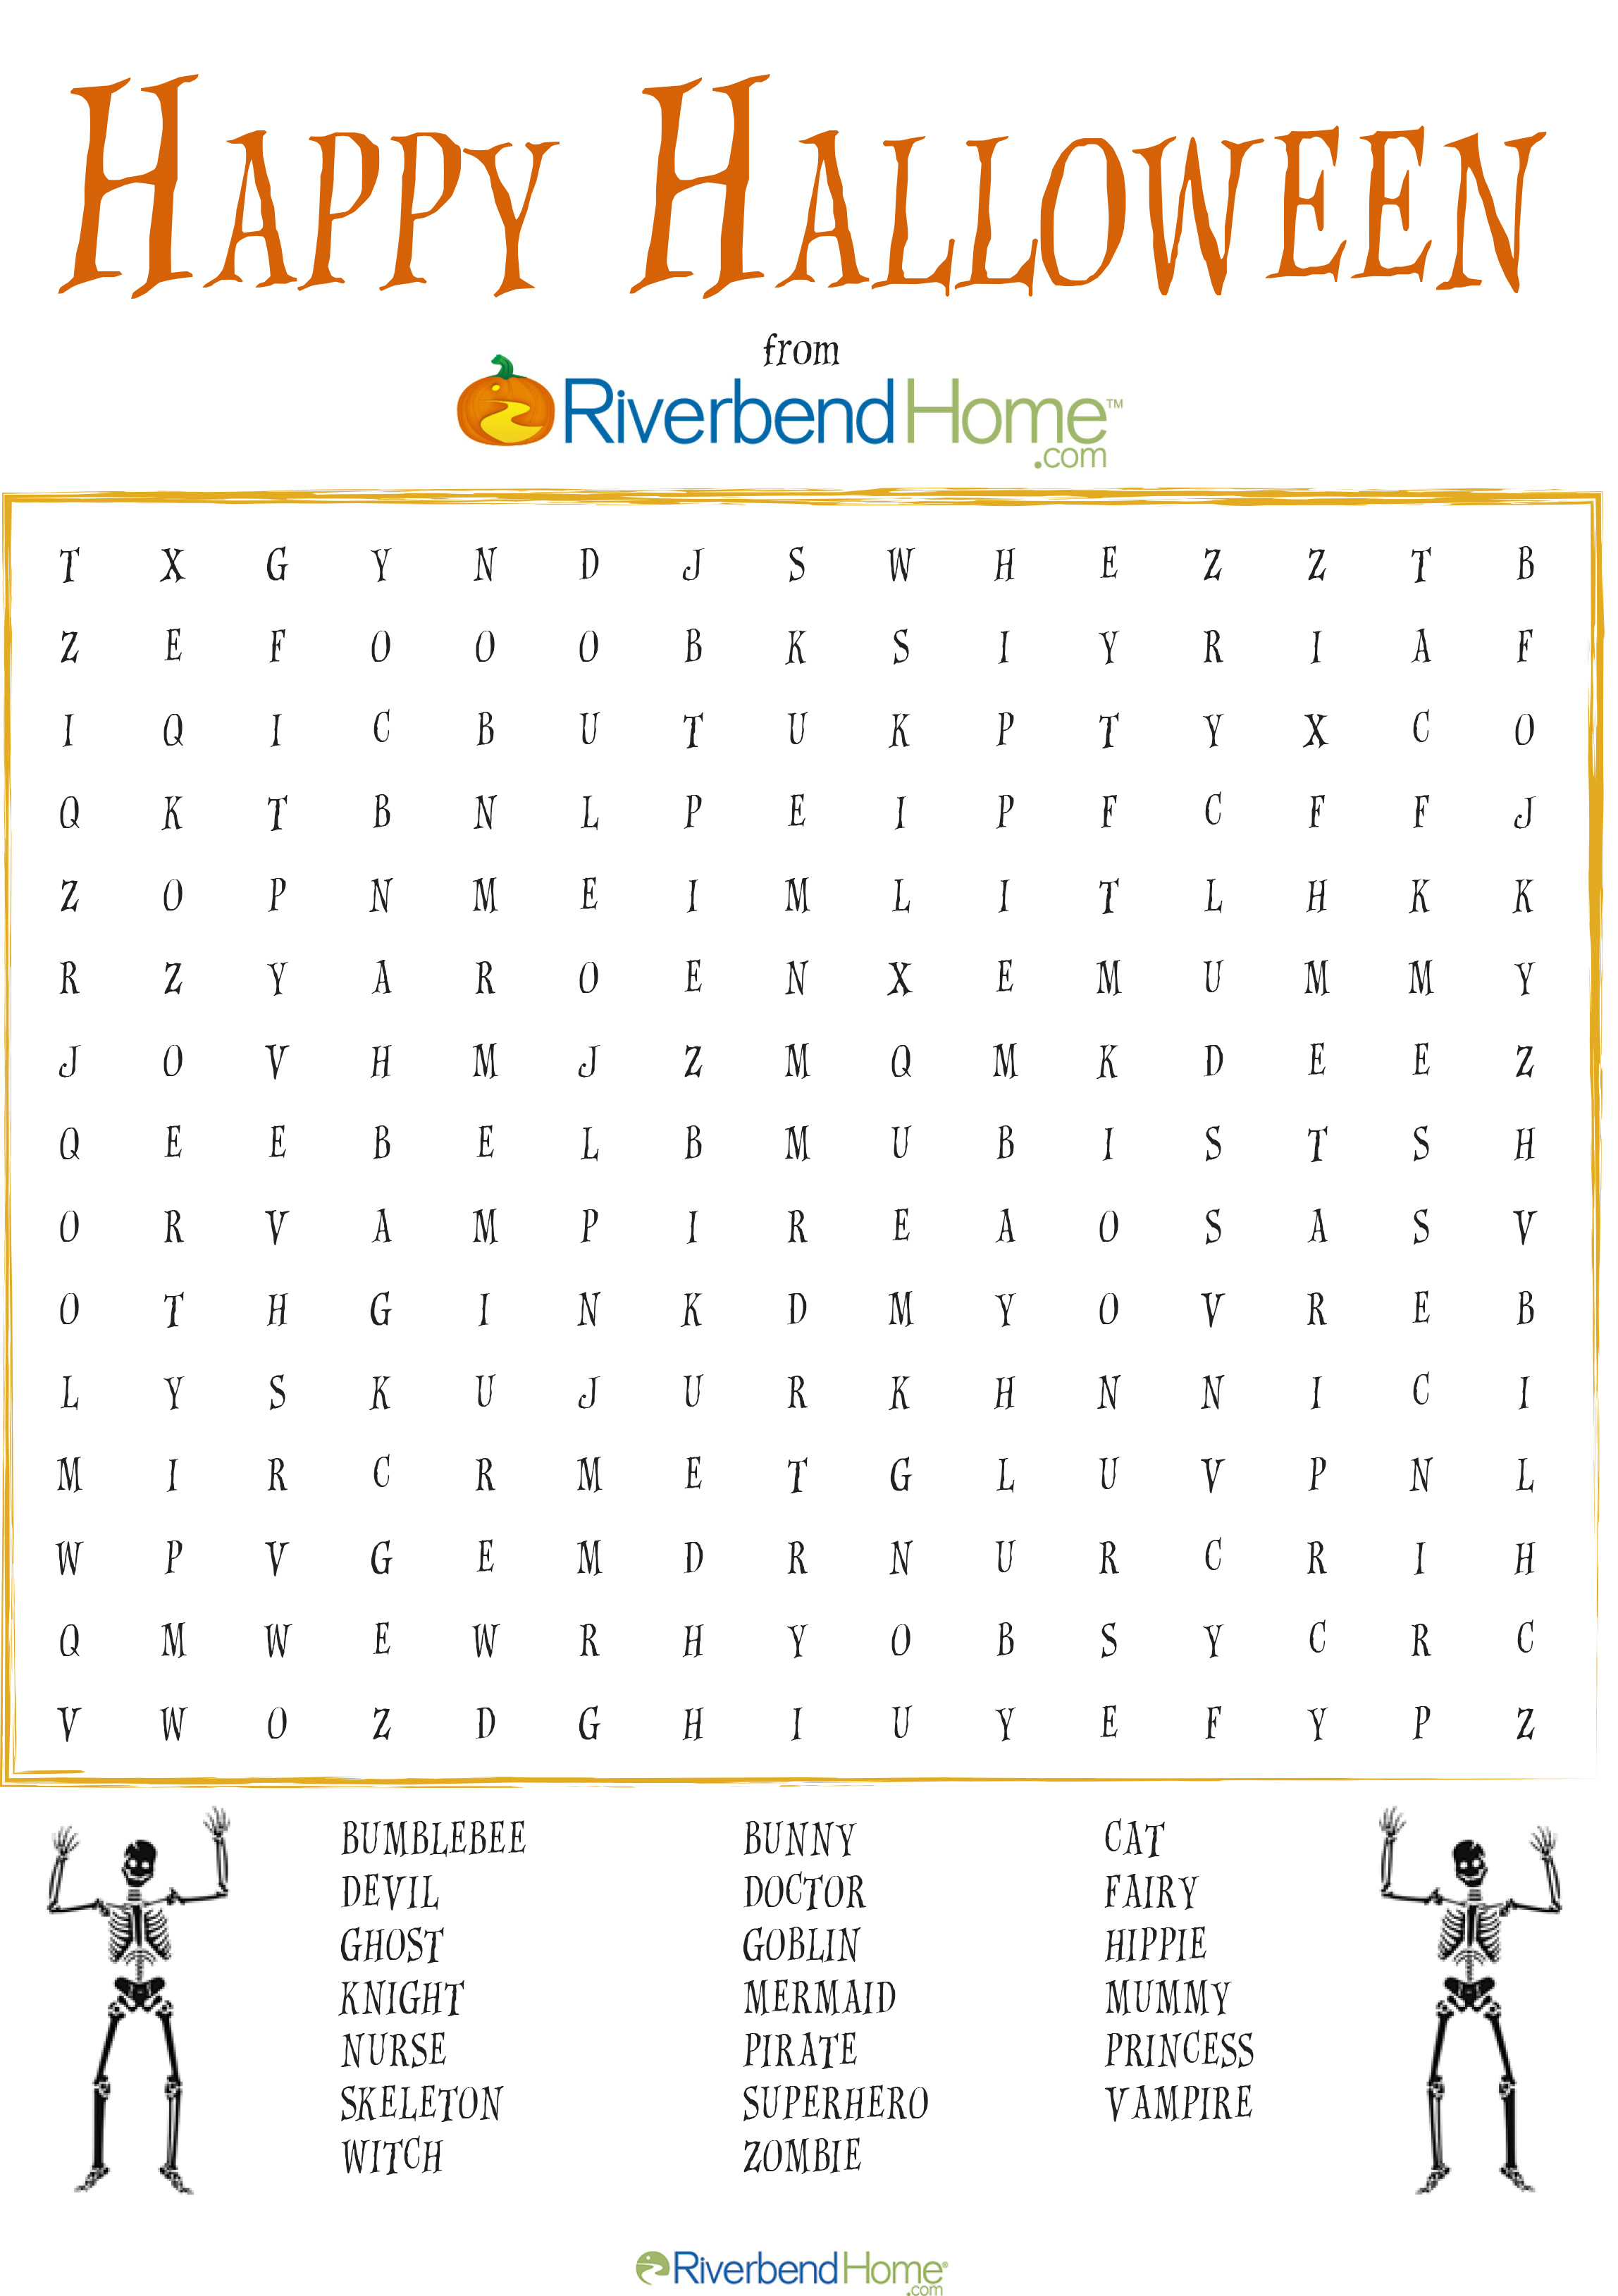 This is a picture of Halloween Word Search Puzzles Printable pertaining to maze